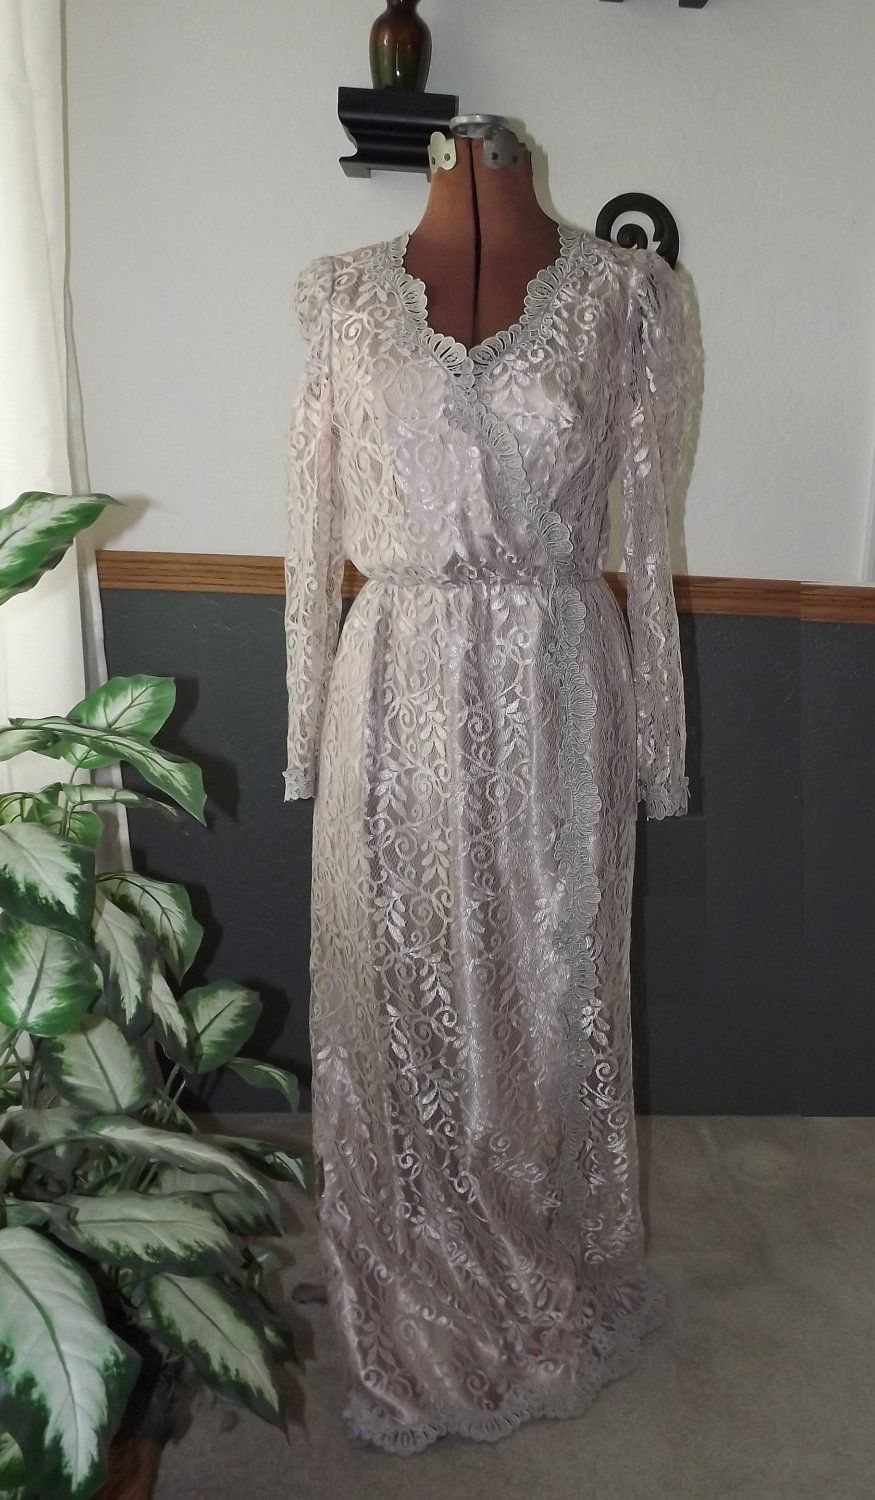 Jcpenney wedding dresses plus size  Susan Gay mikegay on Pinterest